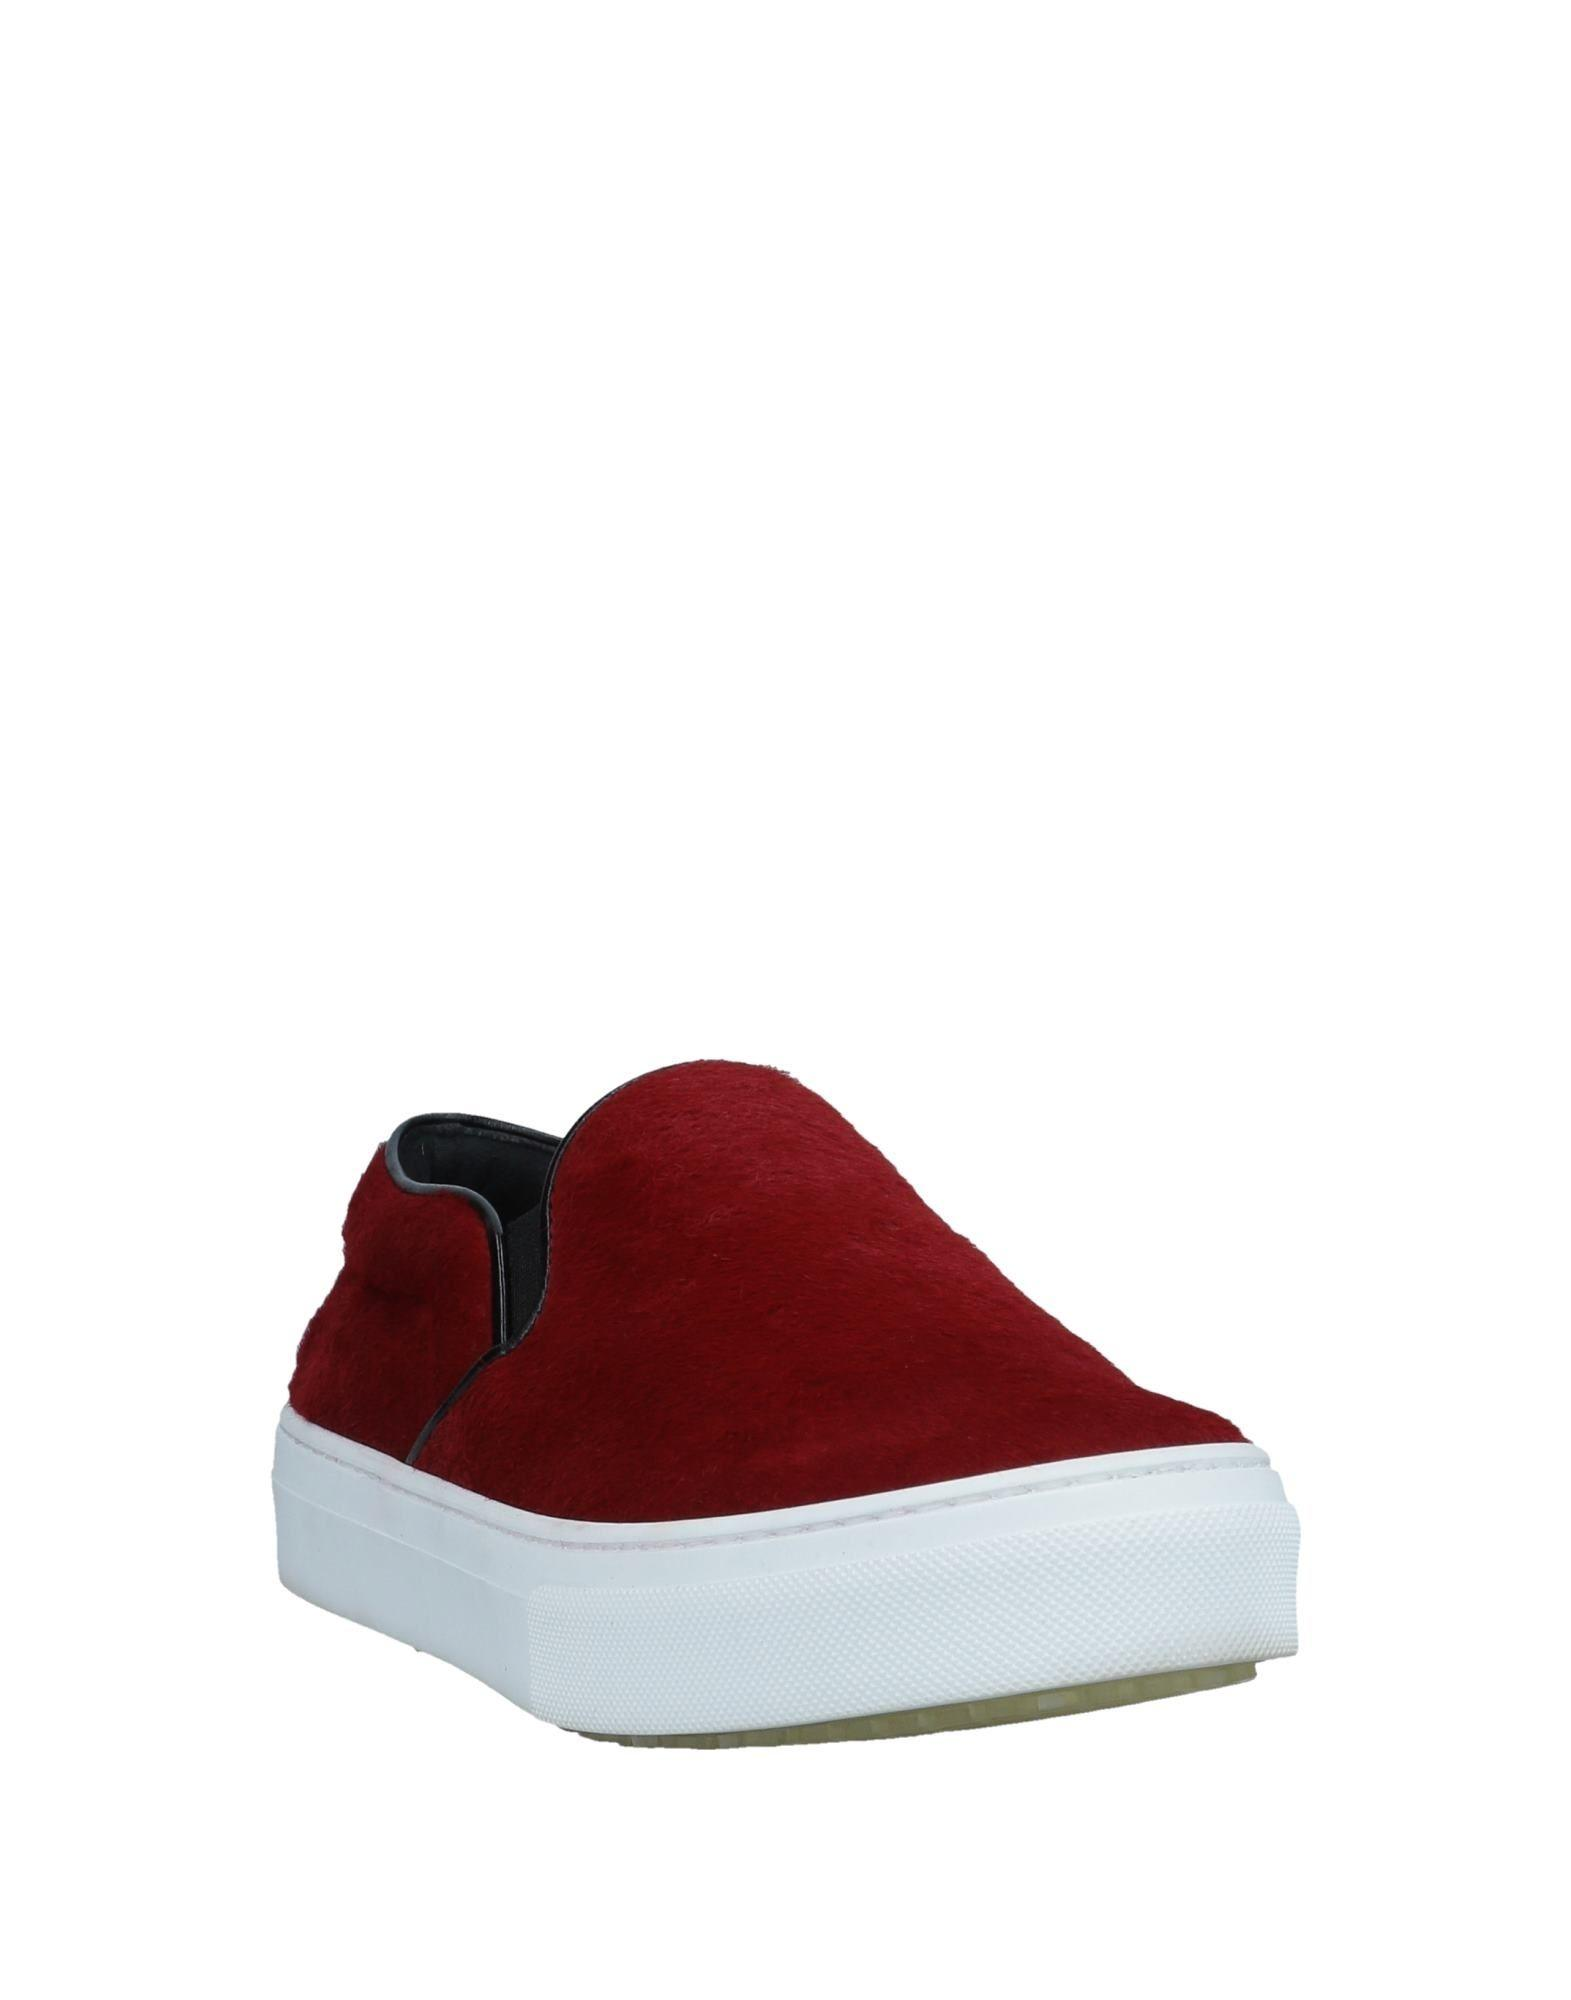 Celine Leather Low-tops & Sneakers in Brick Red (Red)